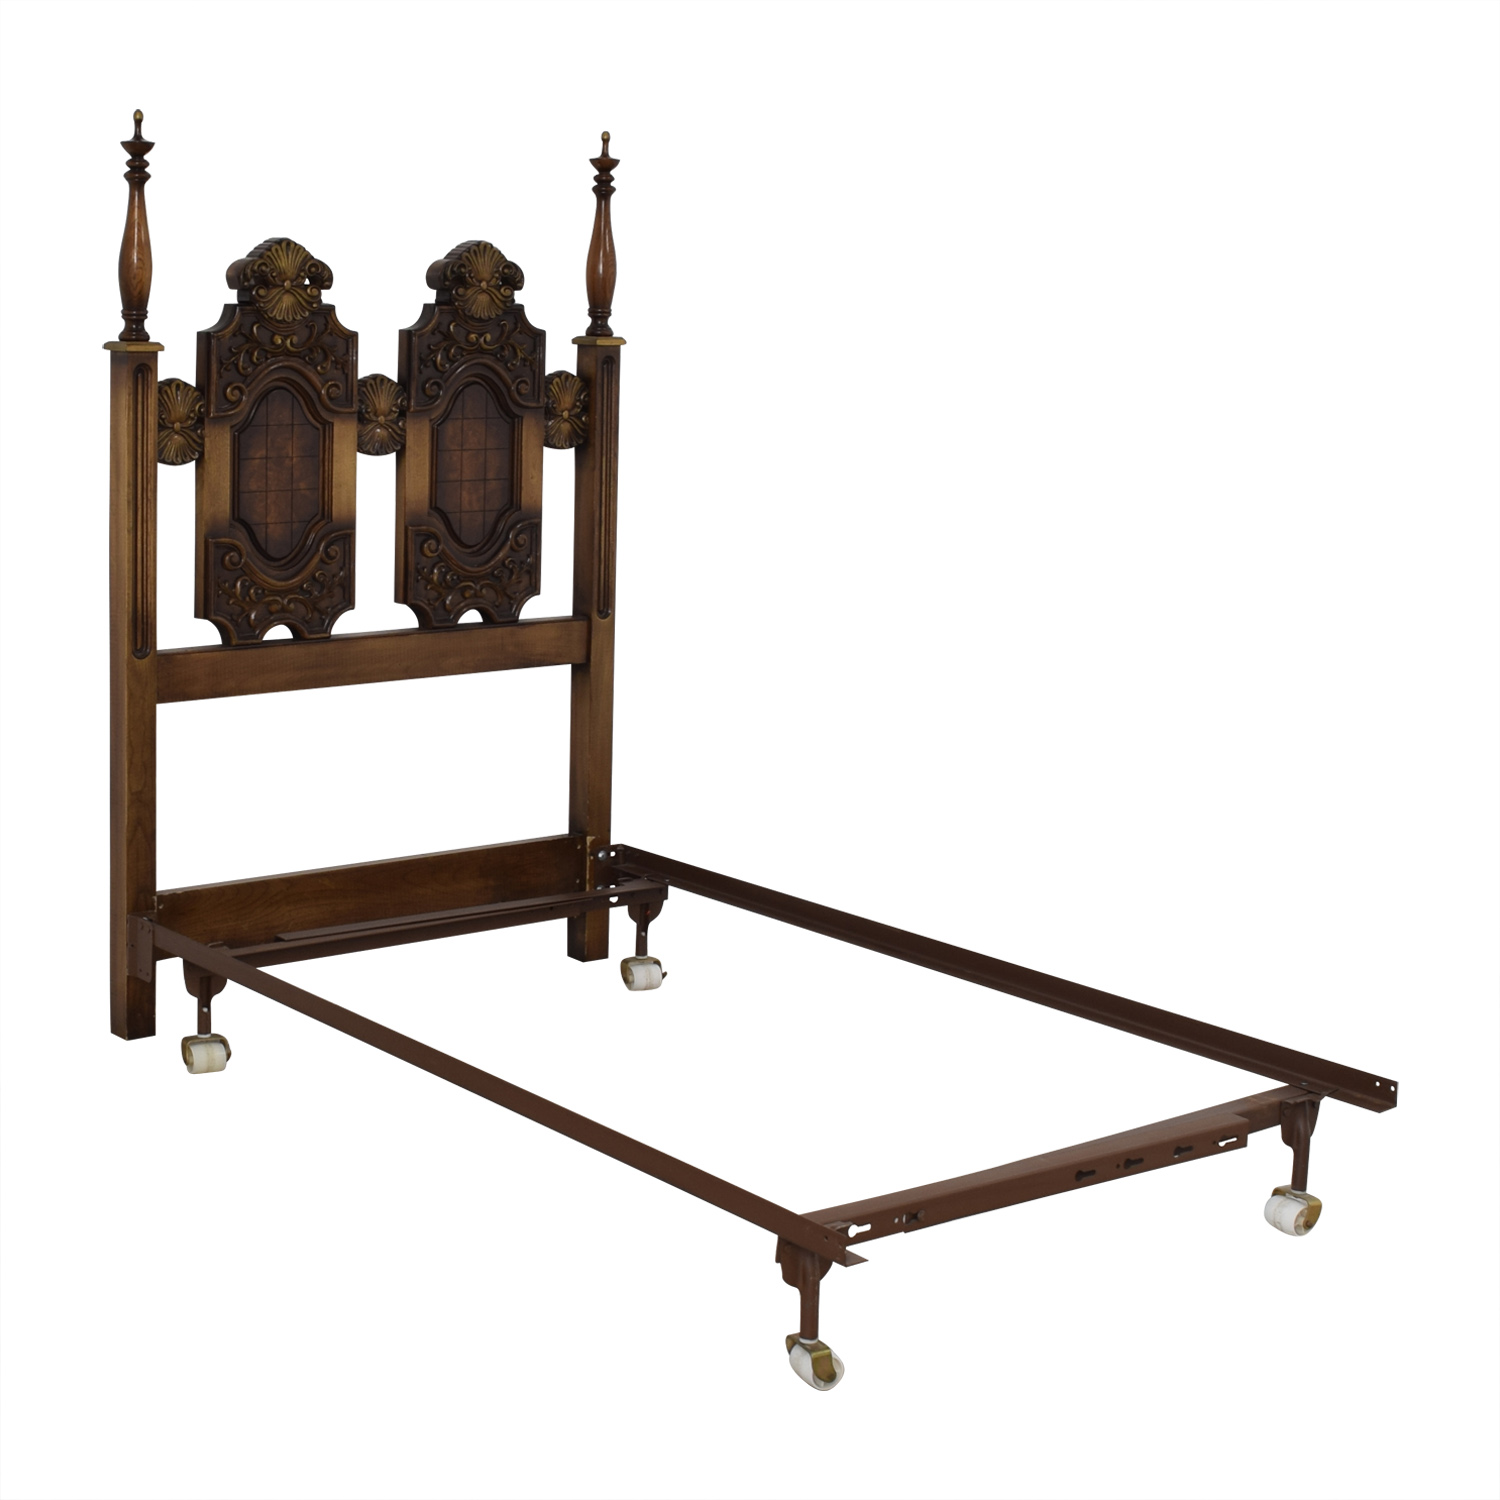 shop Double Wood Twin Bed Frame on Castors